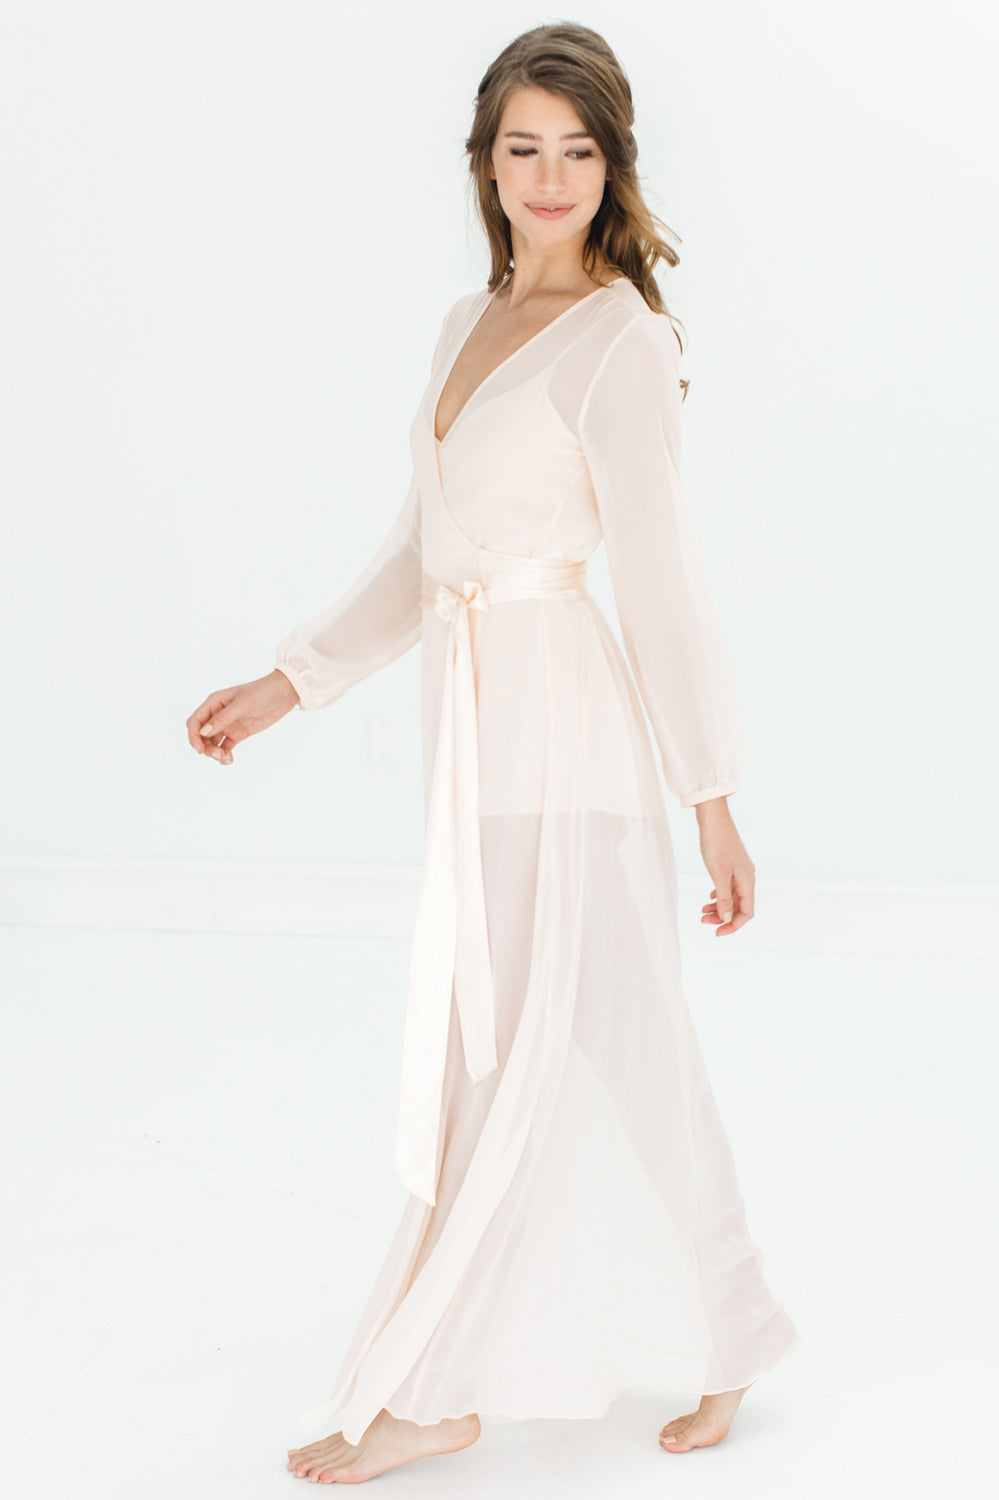 Nina Silk Chiffon Wrap Robe in Blush pink - style R130